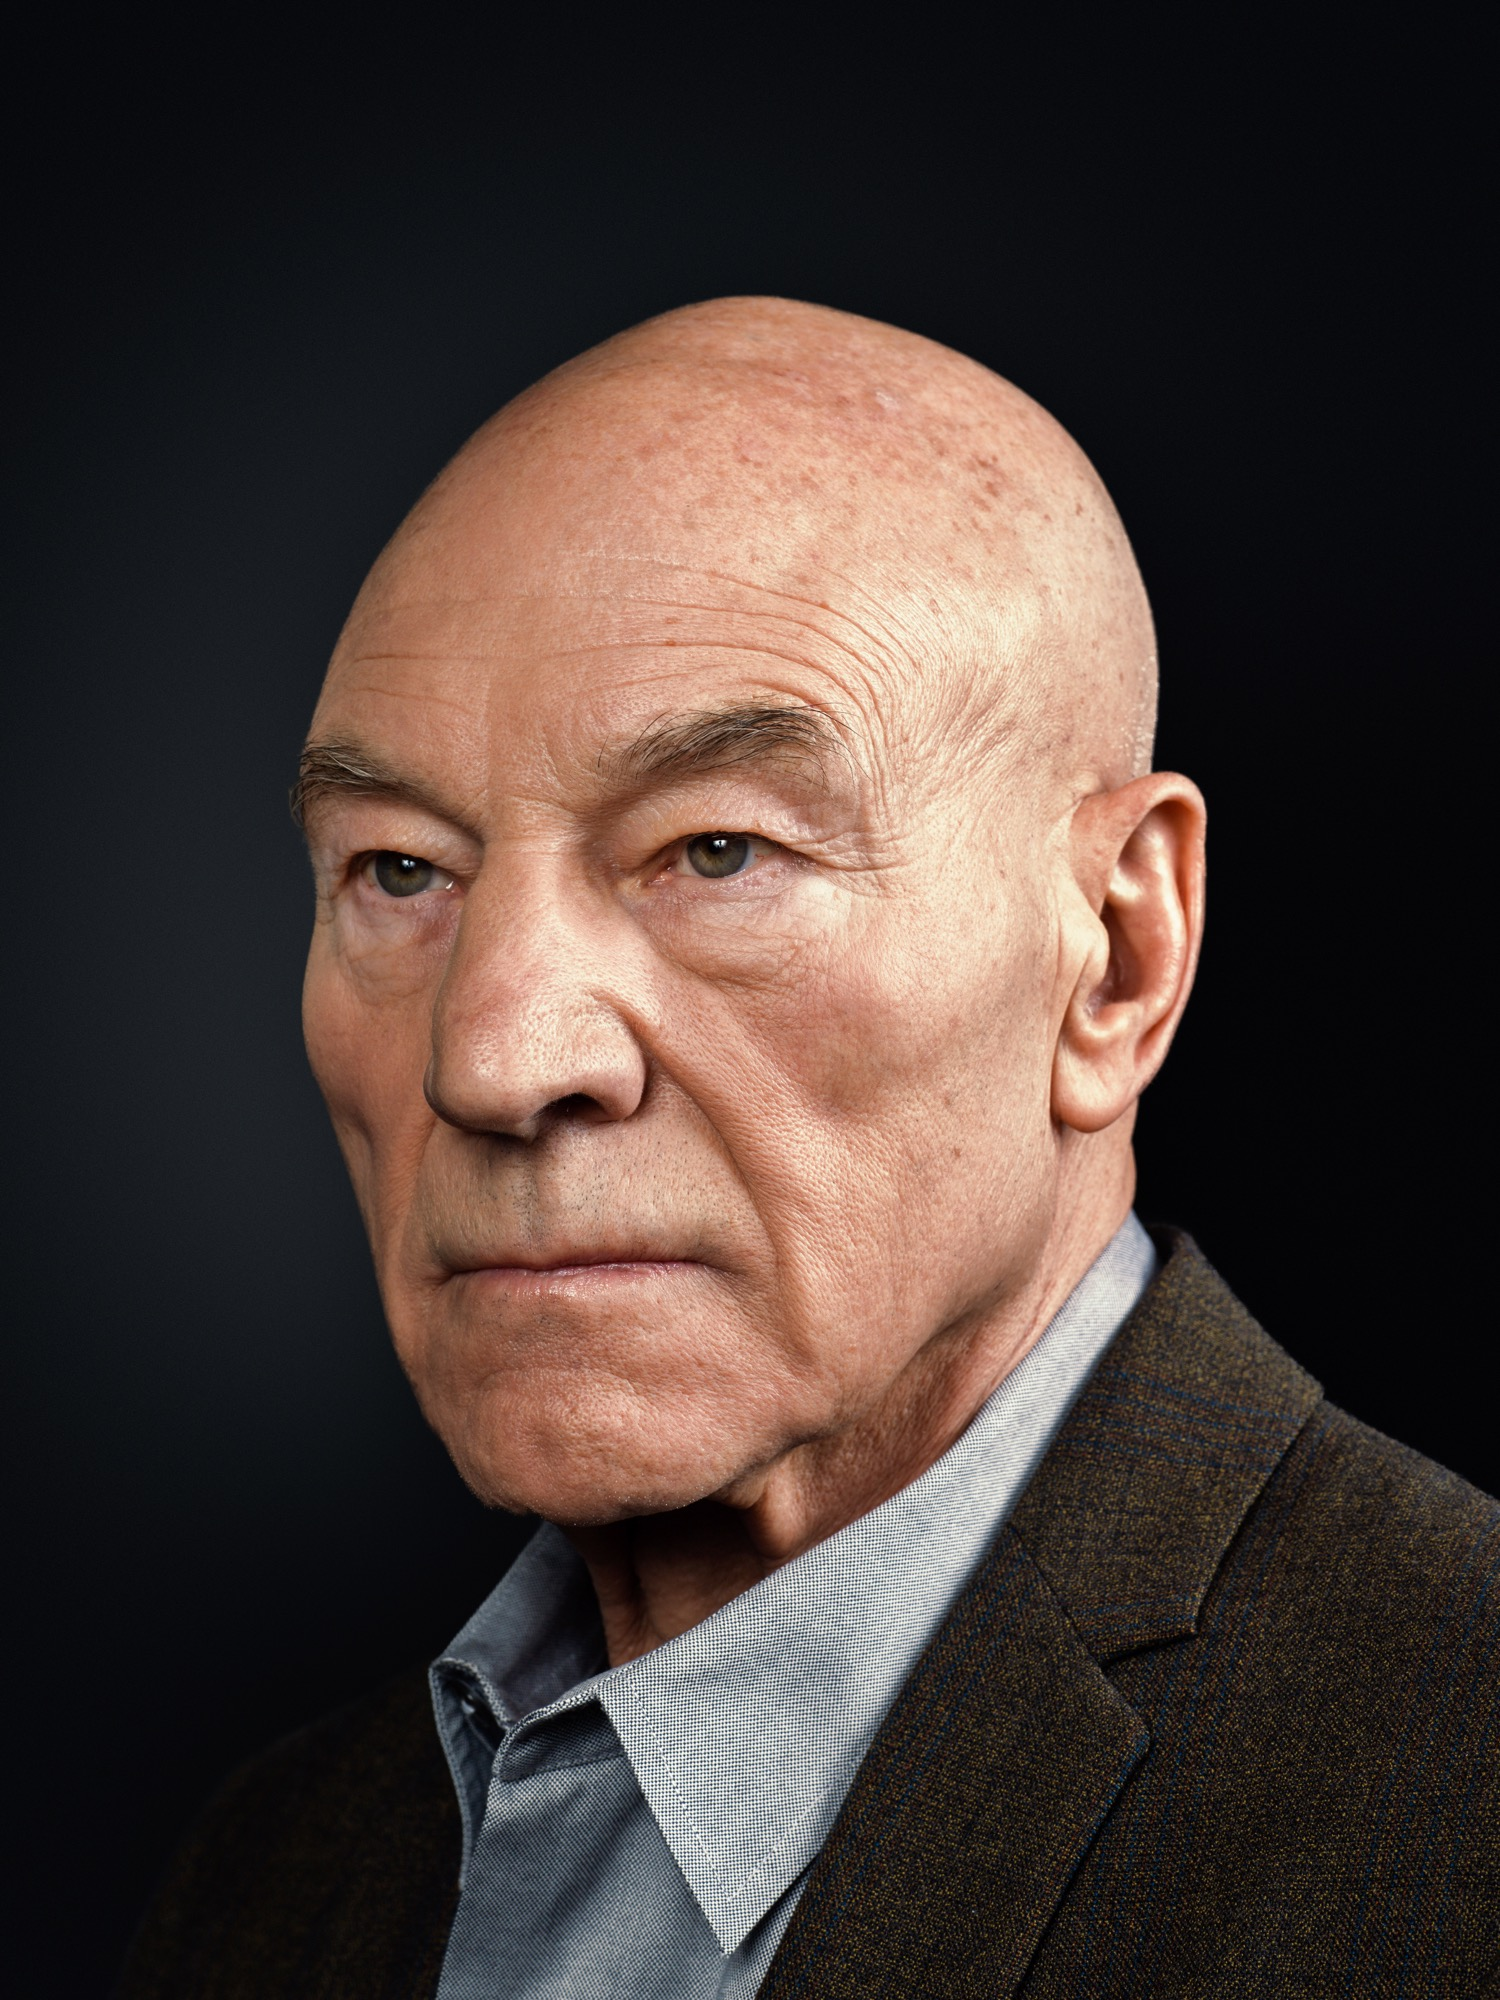 Sir Patrick Stewart Portrait Sitting 2014-14-05- (3 of 4).jpg